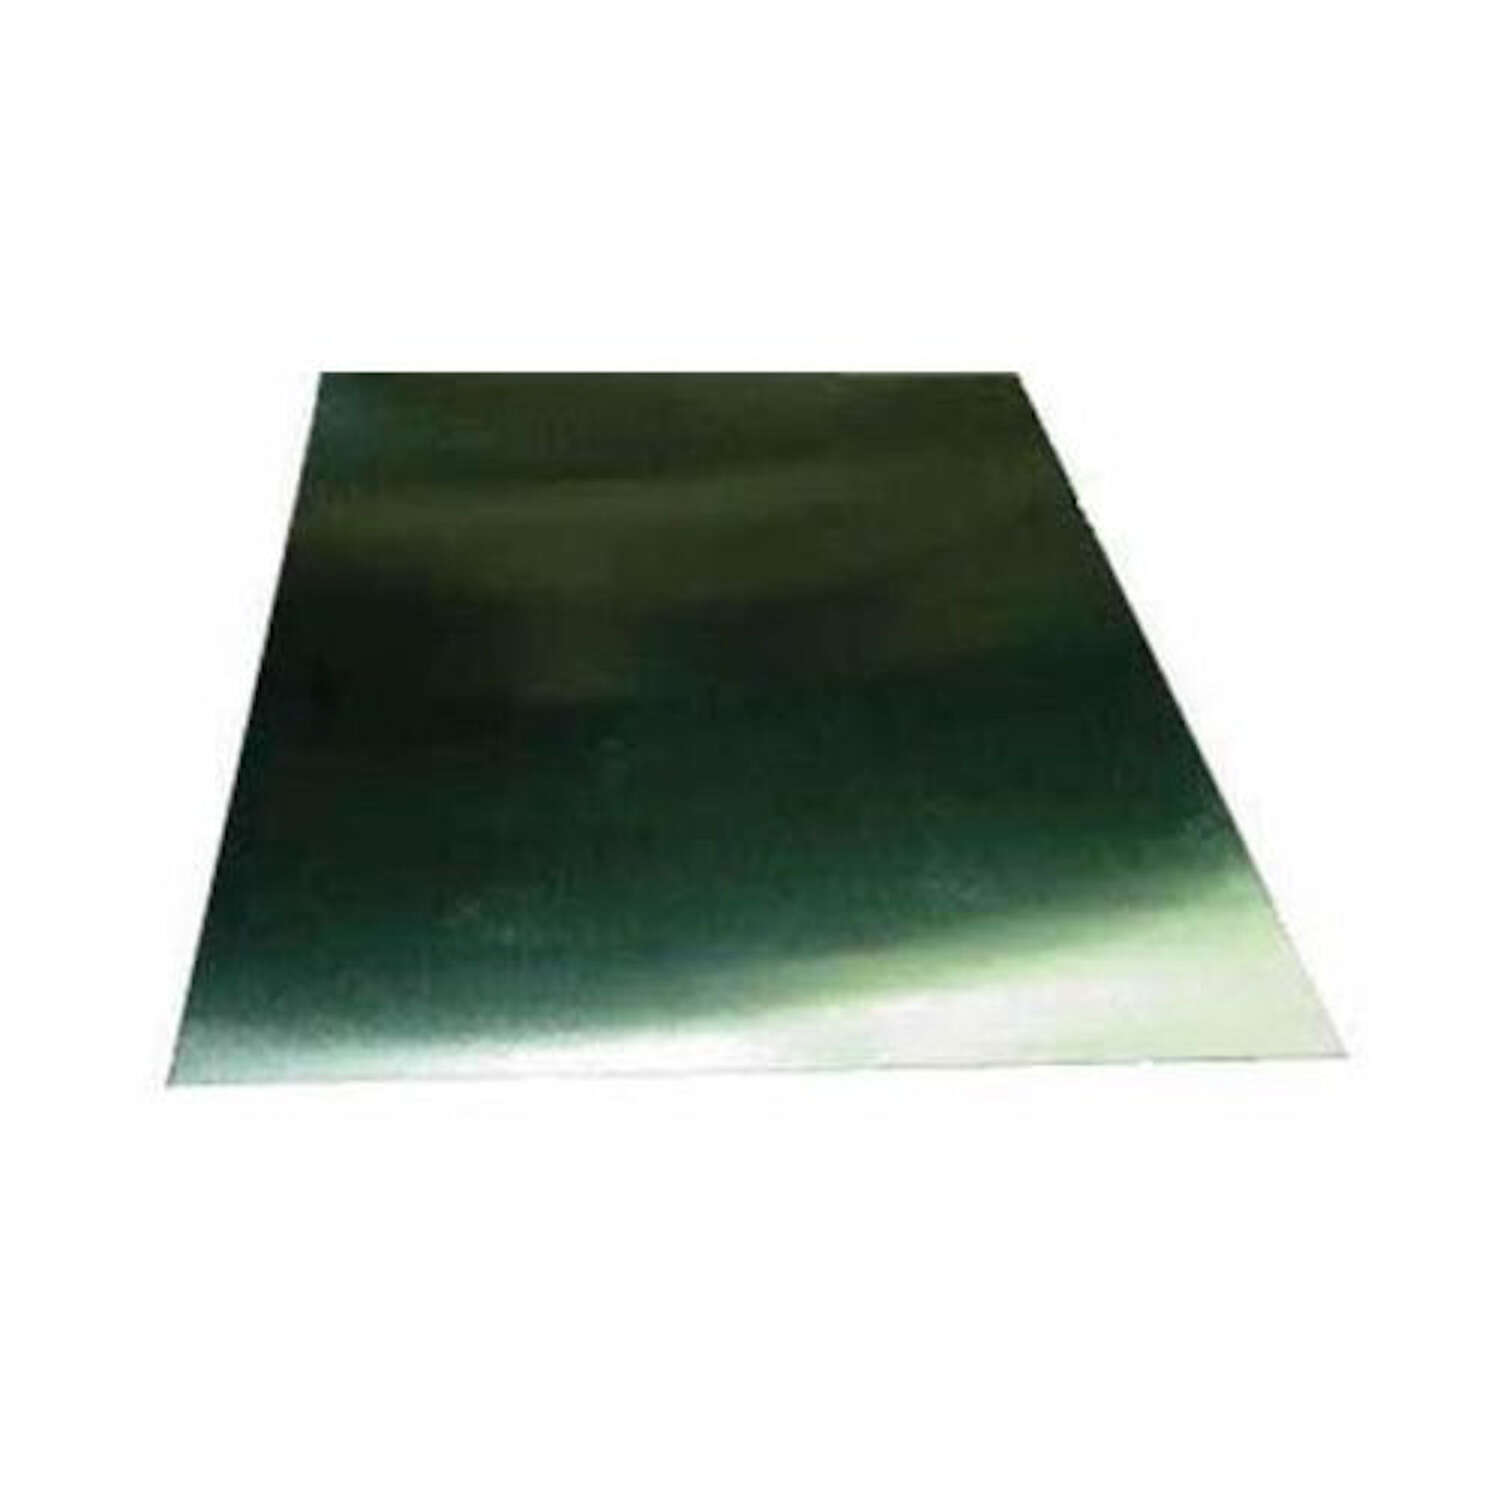 K&S  0.008 in.  x 6 in. W x 12 in. L Tin  Sheet Metal